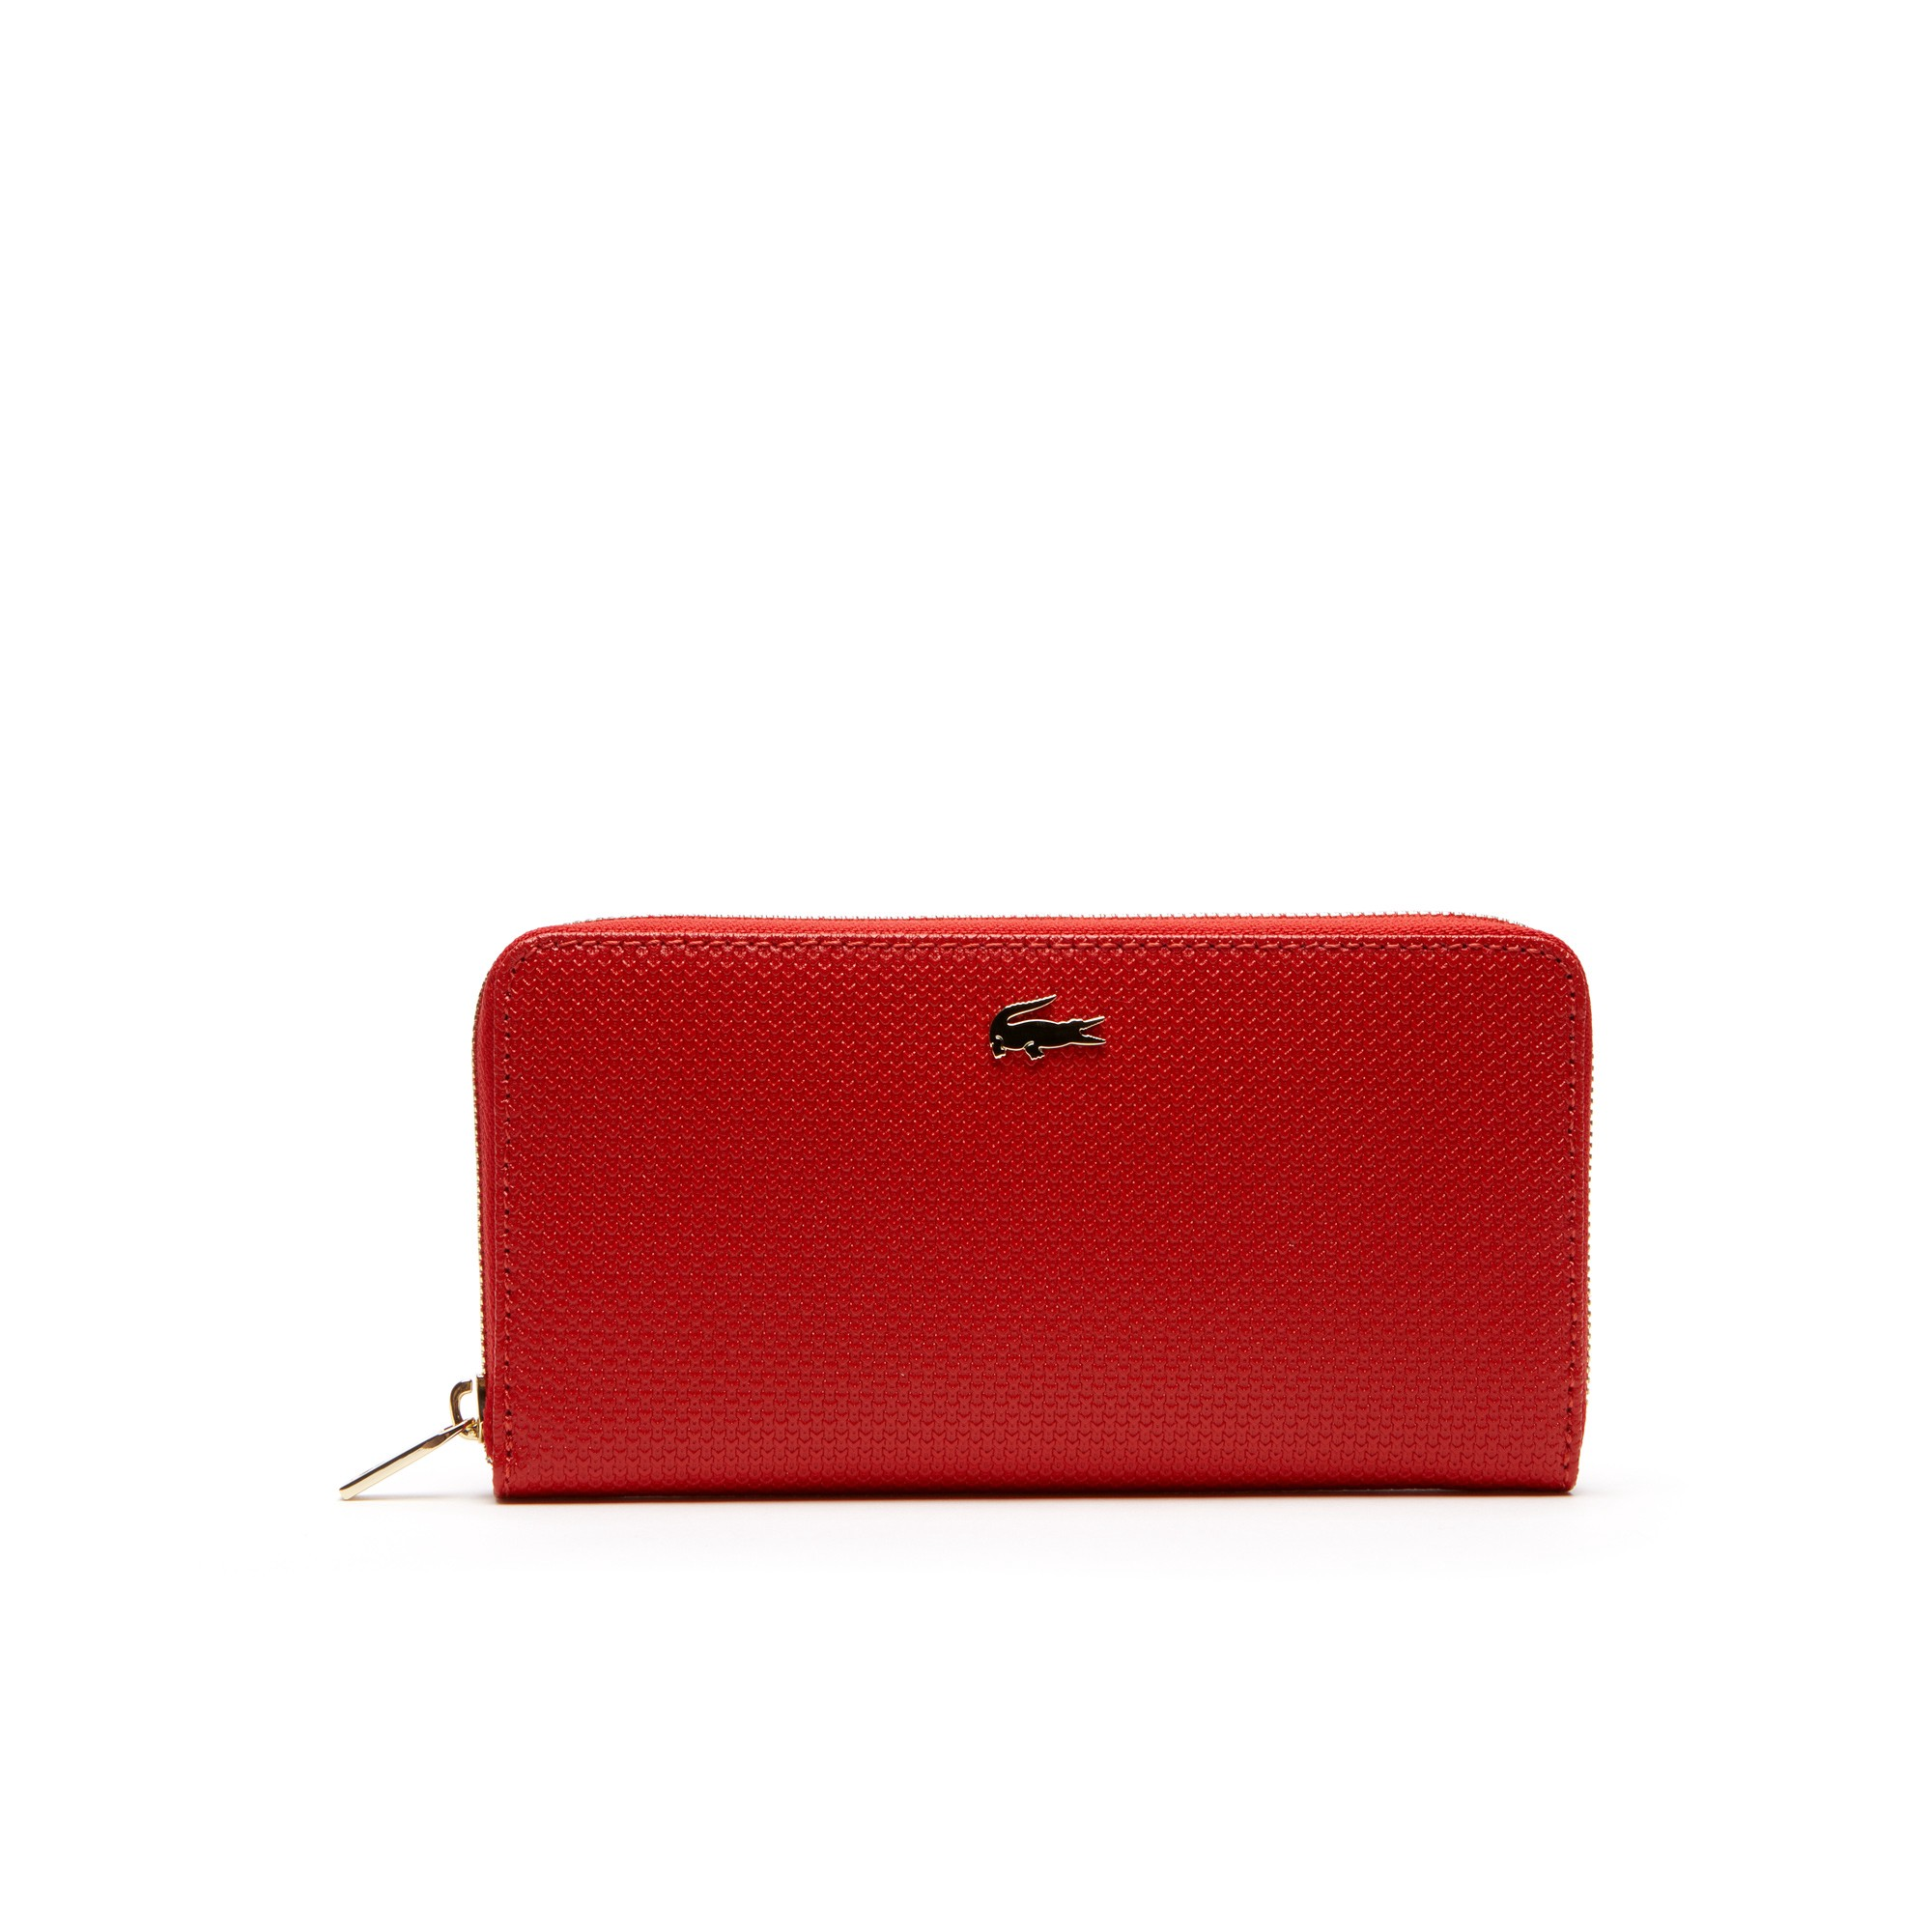 e73b95182a7 LACOSTE Women's Chantaco Piqué Leather Zip Wallet - high risk red. #lacoste  #